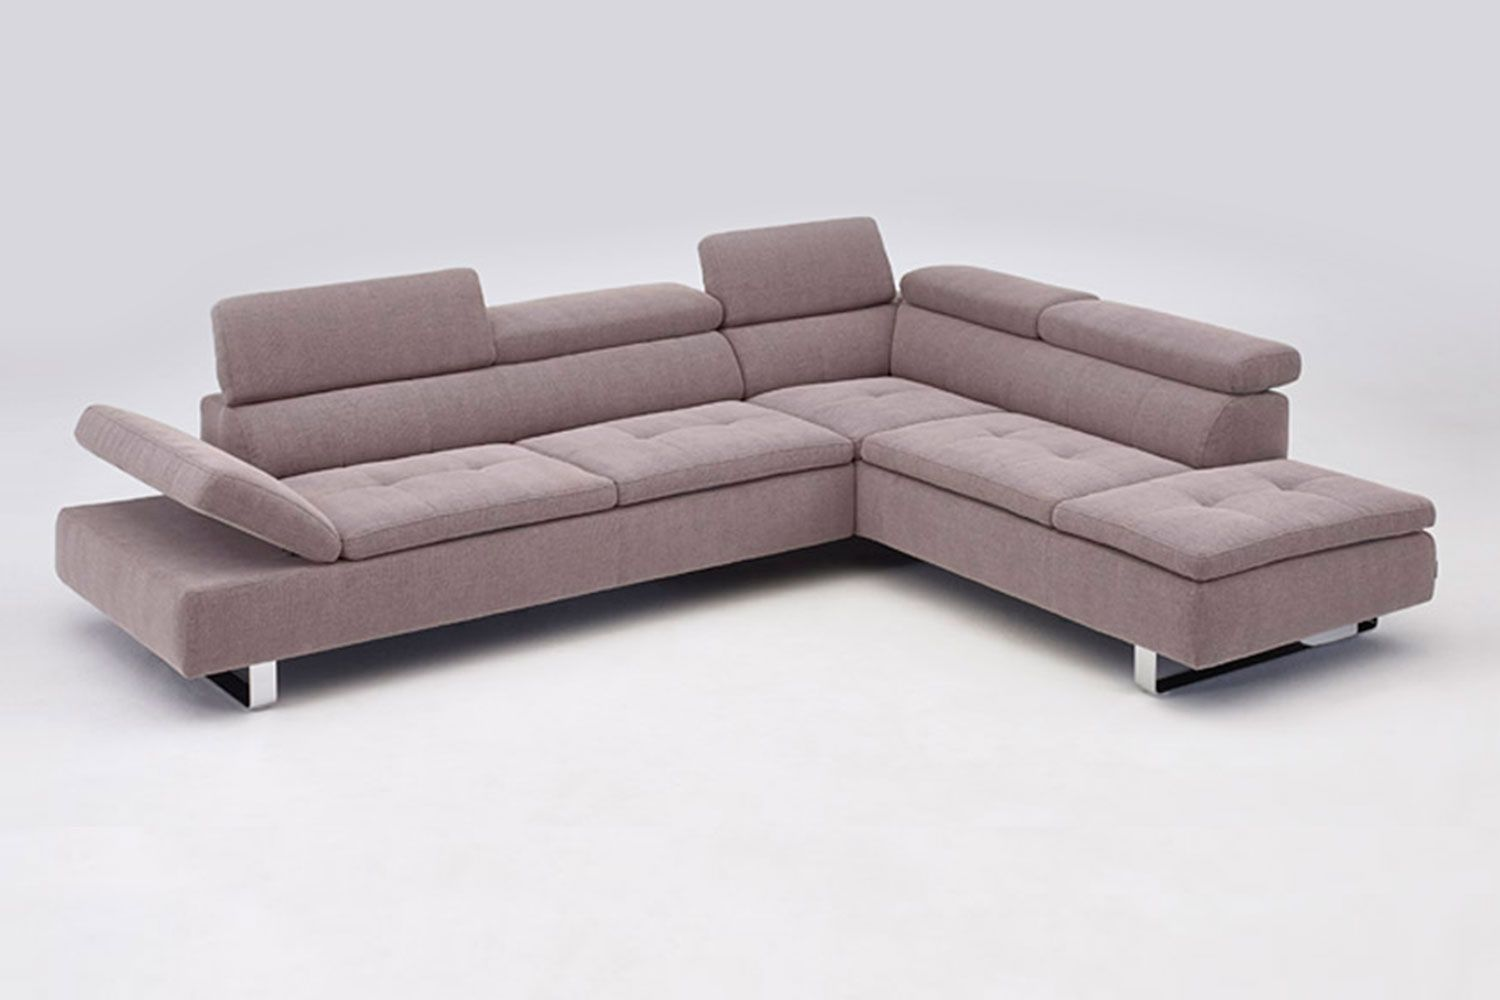 Schillig Sofa Cocoon W Schillig Mia Sectional Ambiente Modern Furniture Sectionals